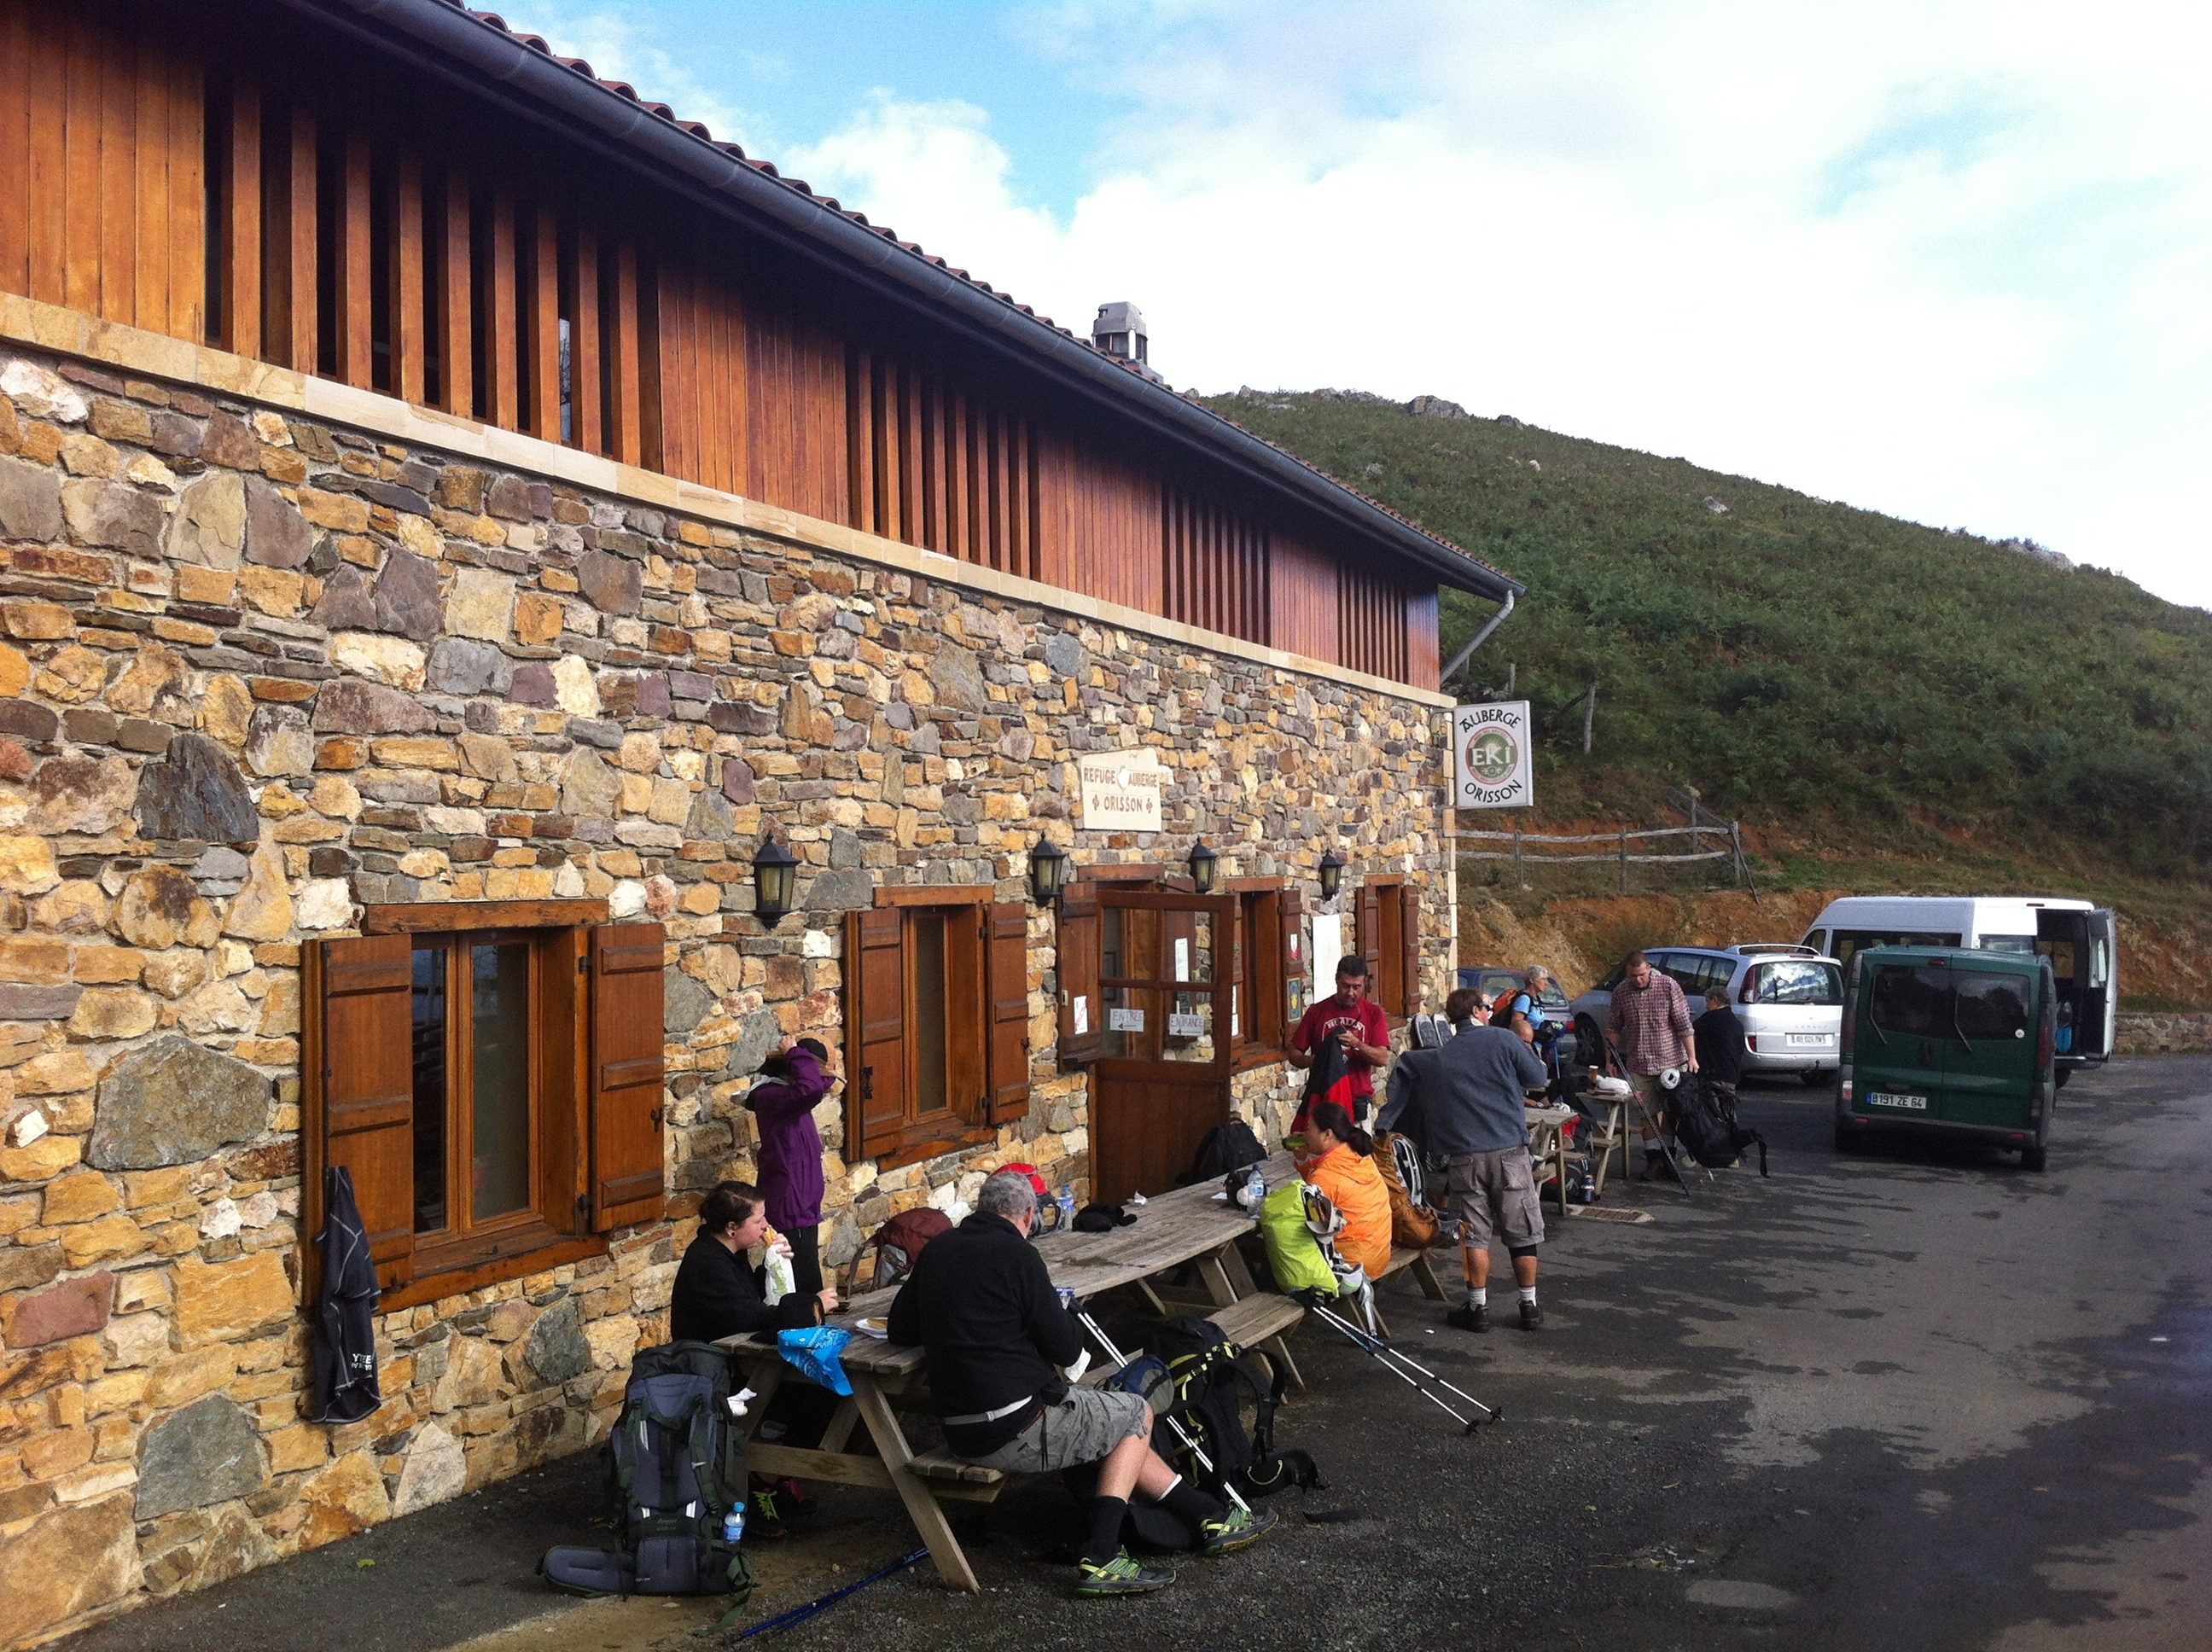 Day 1 st jean pied de port to roncesvalles 26km iwouldwalk500mls - Albergue st jean pied de port ...